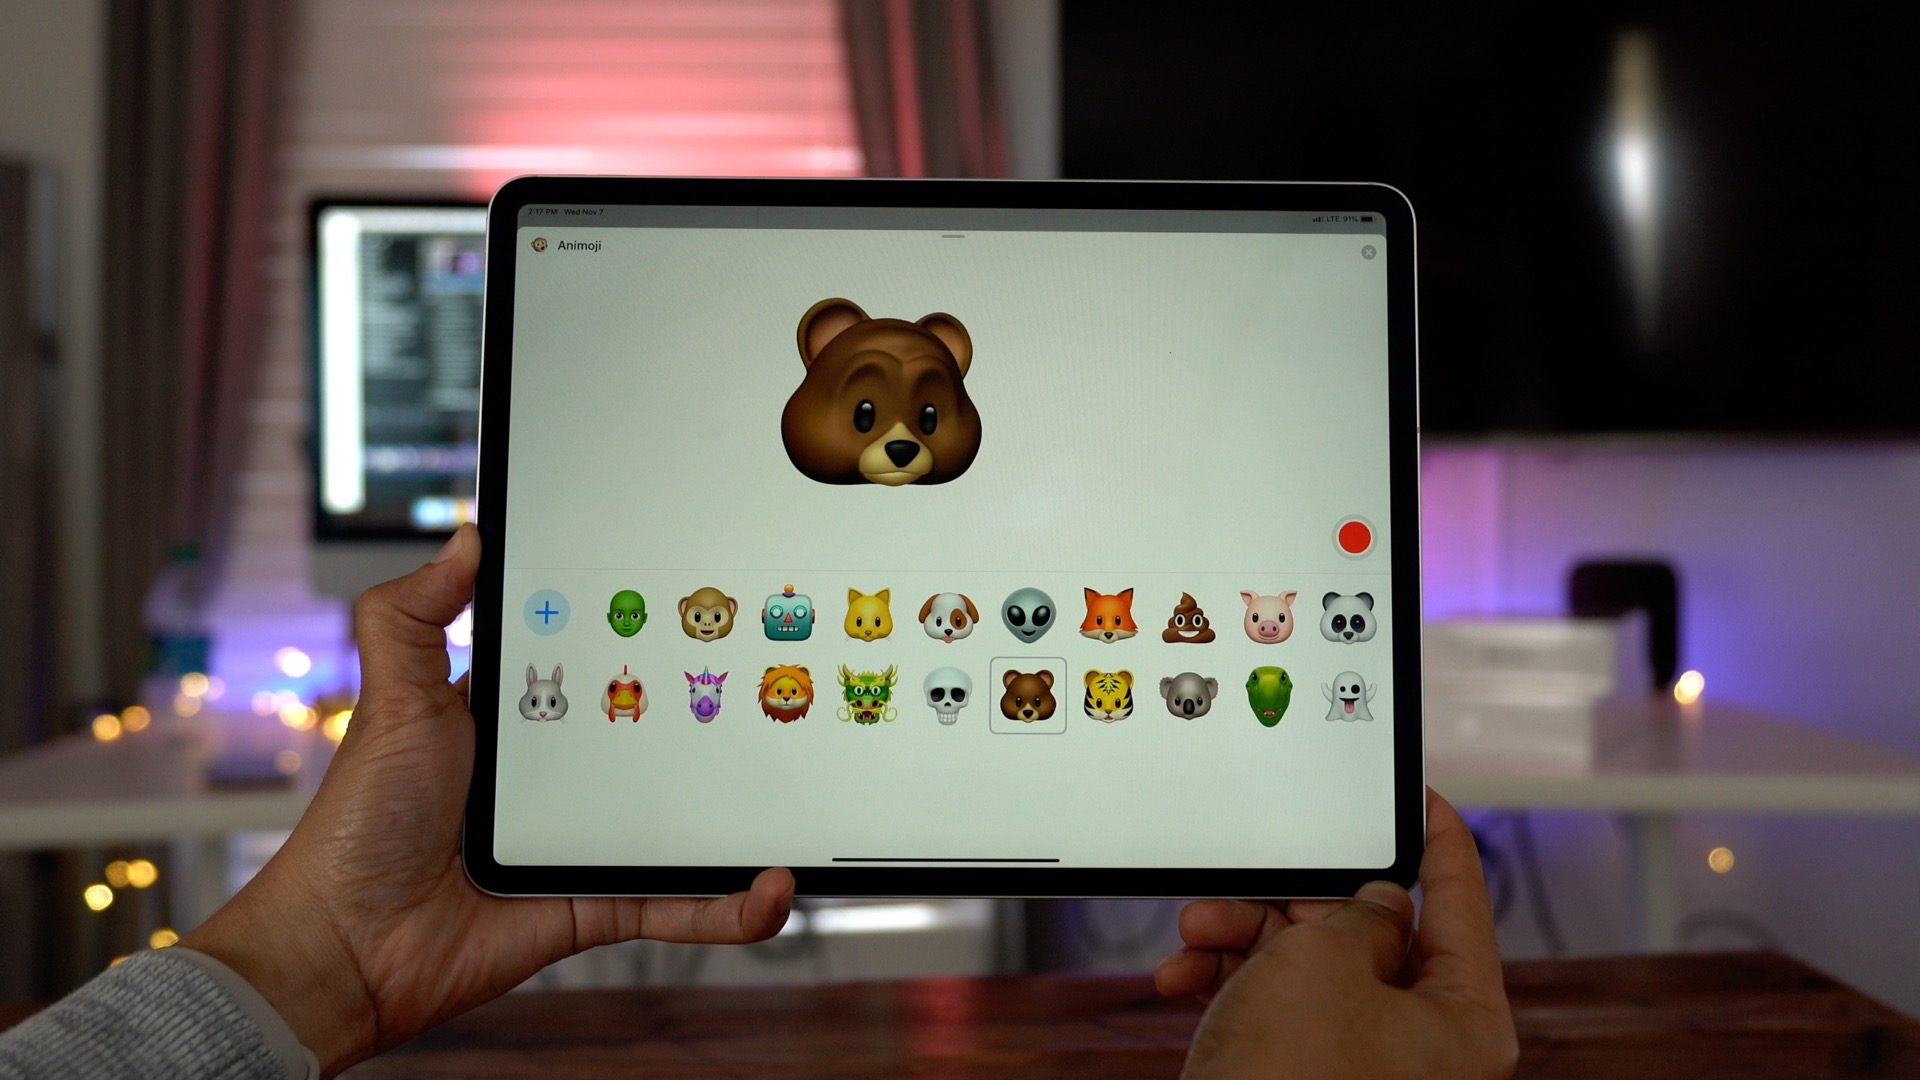 How to get 'Animoji' on older iPhones and iPads without Face ID